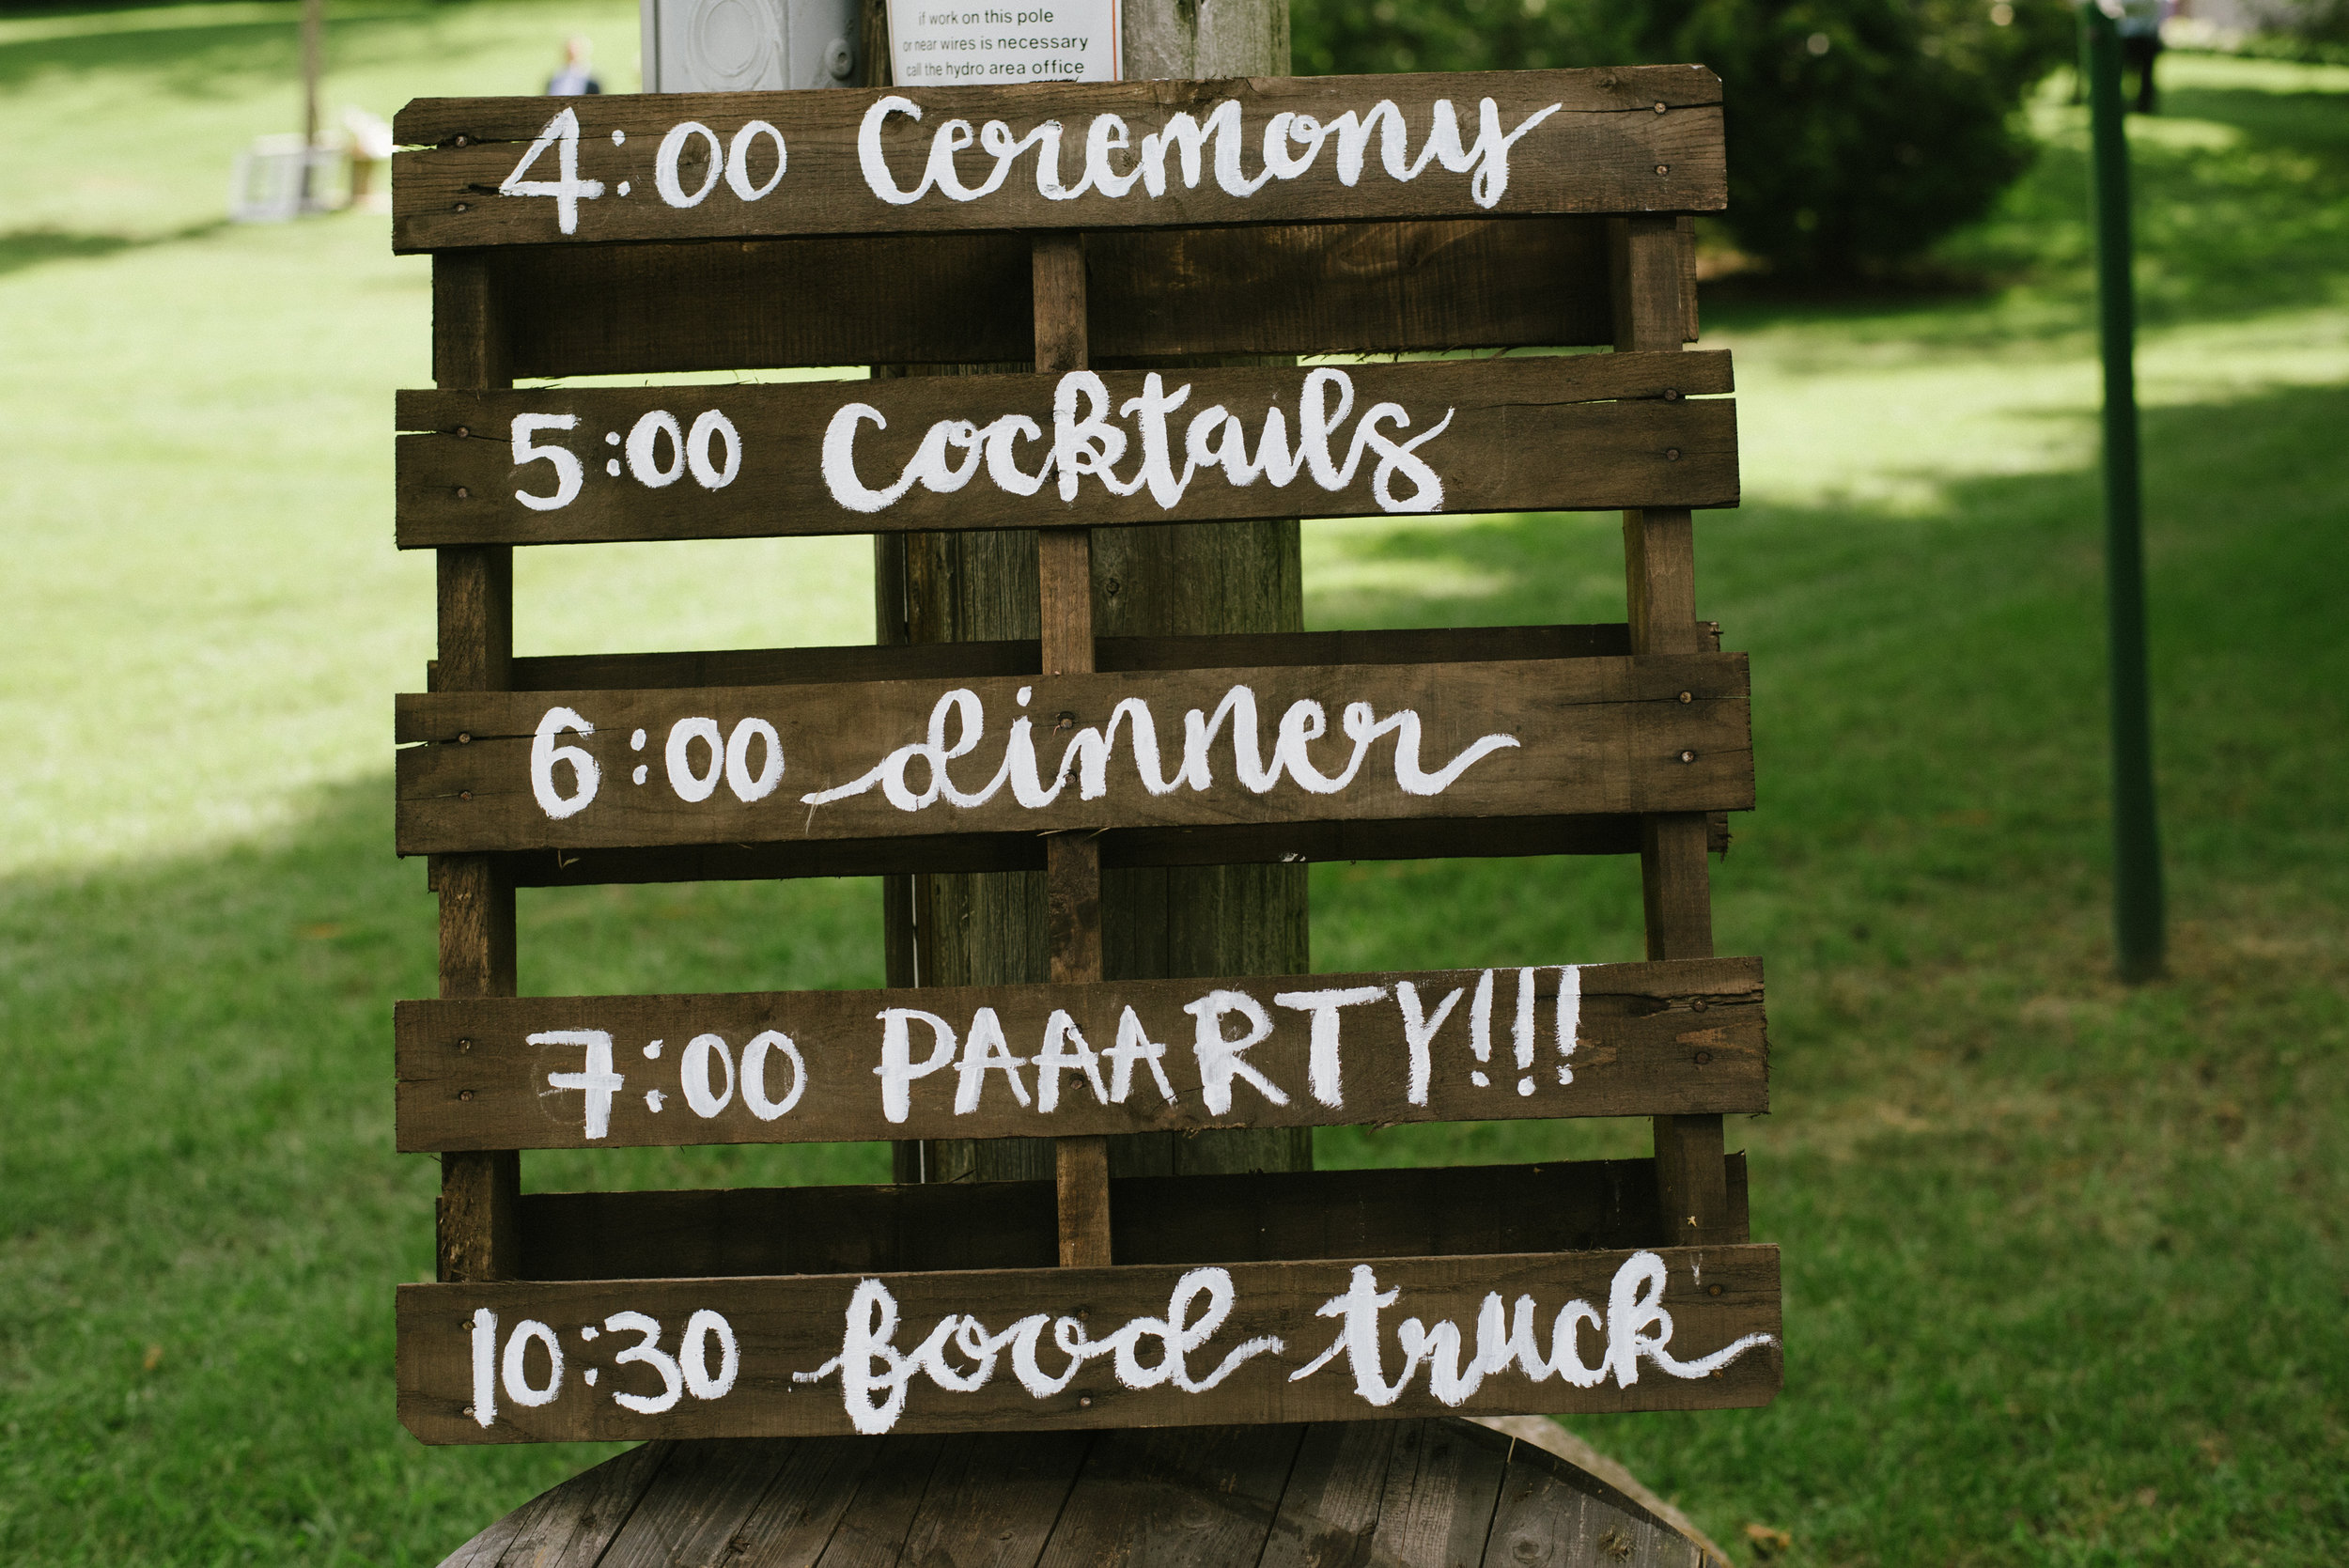 sweet-backyardwedding-web-48.jpg